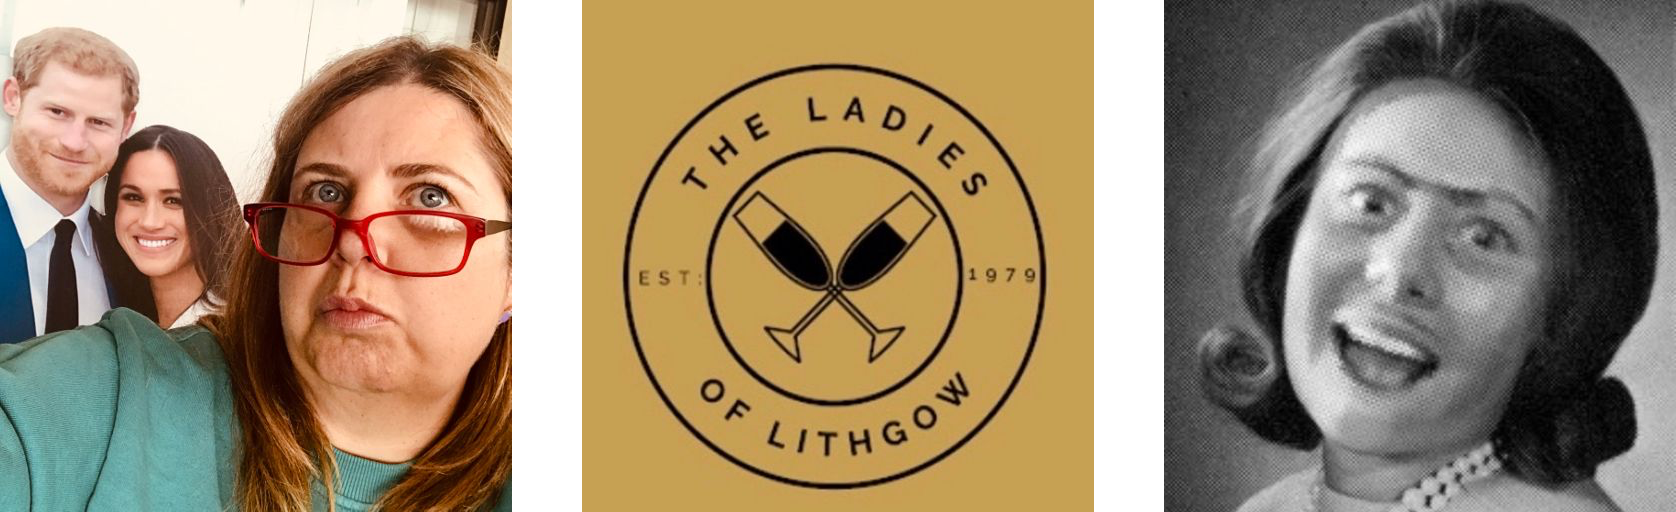 the-ladies-of-lithgow-banner.png